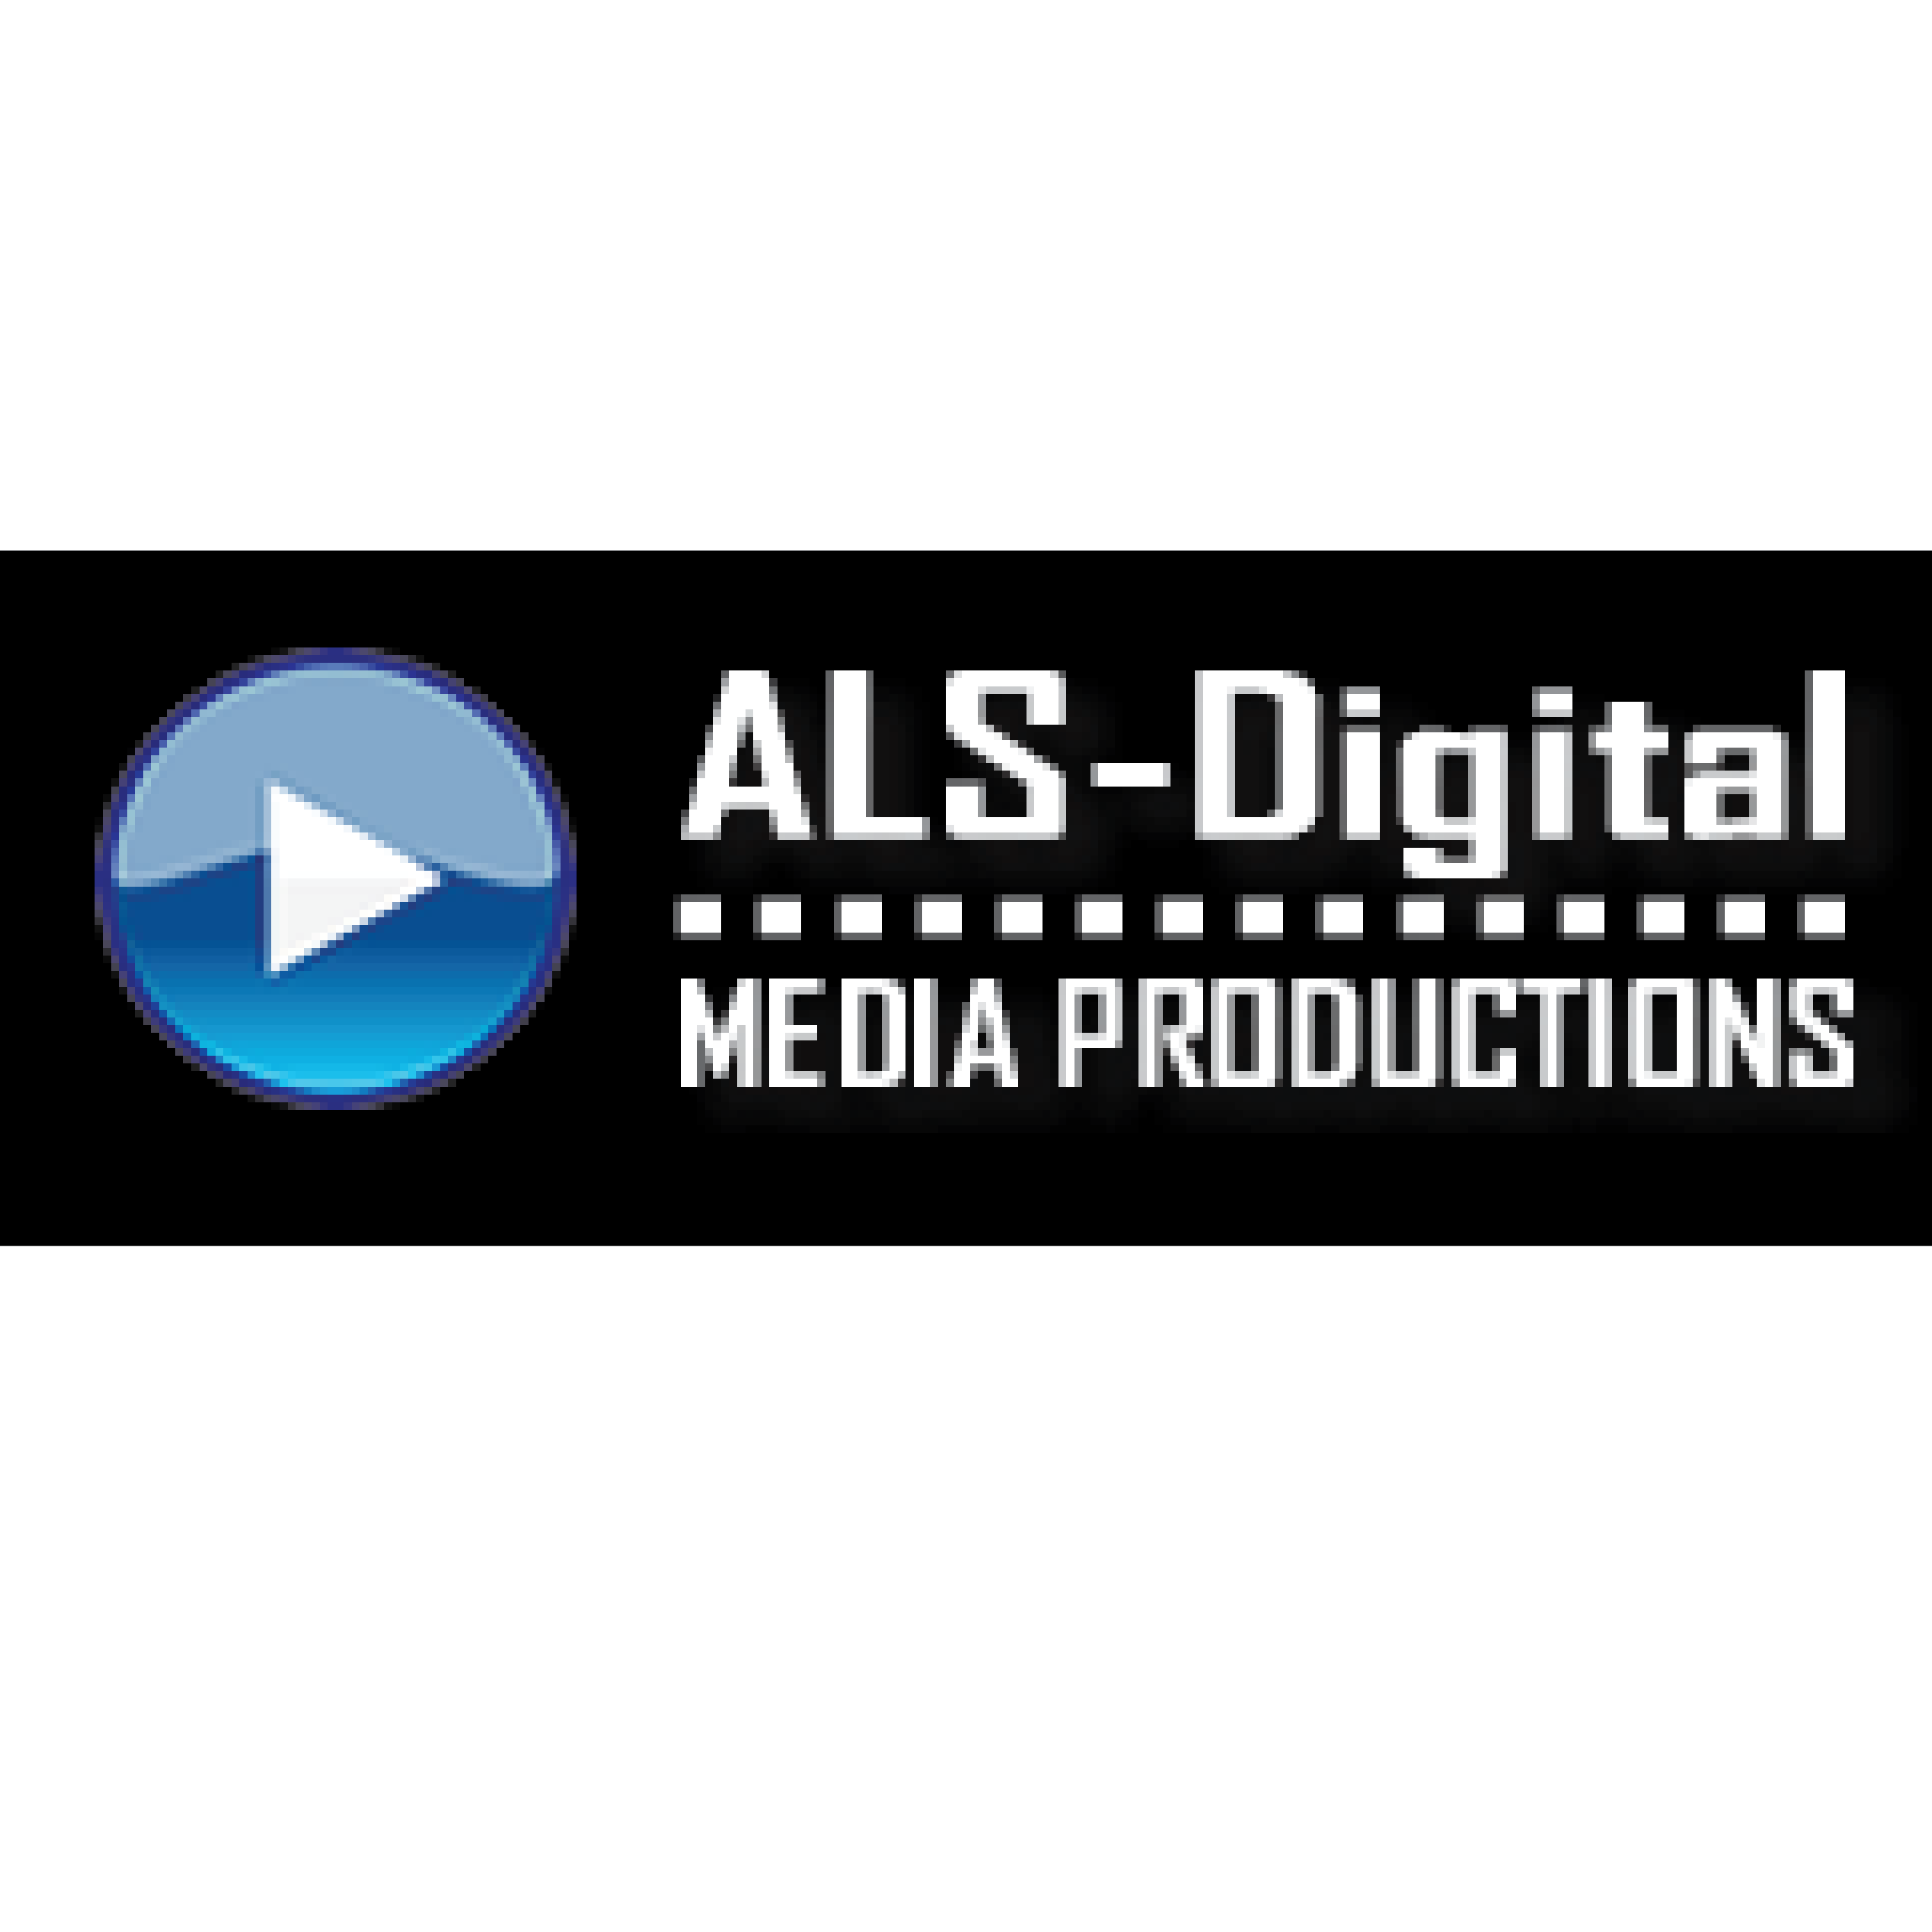 Als-digital